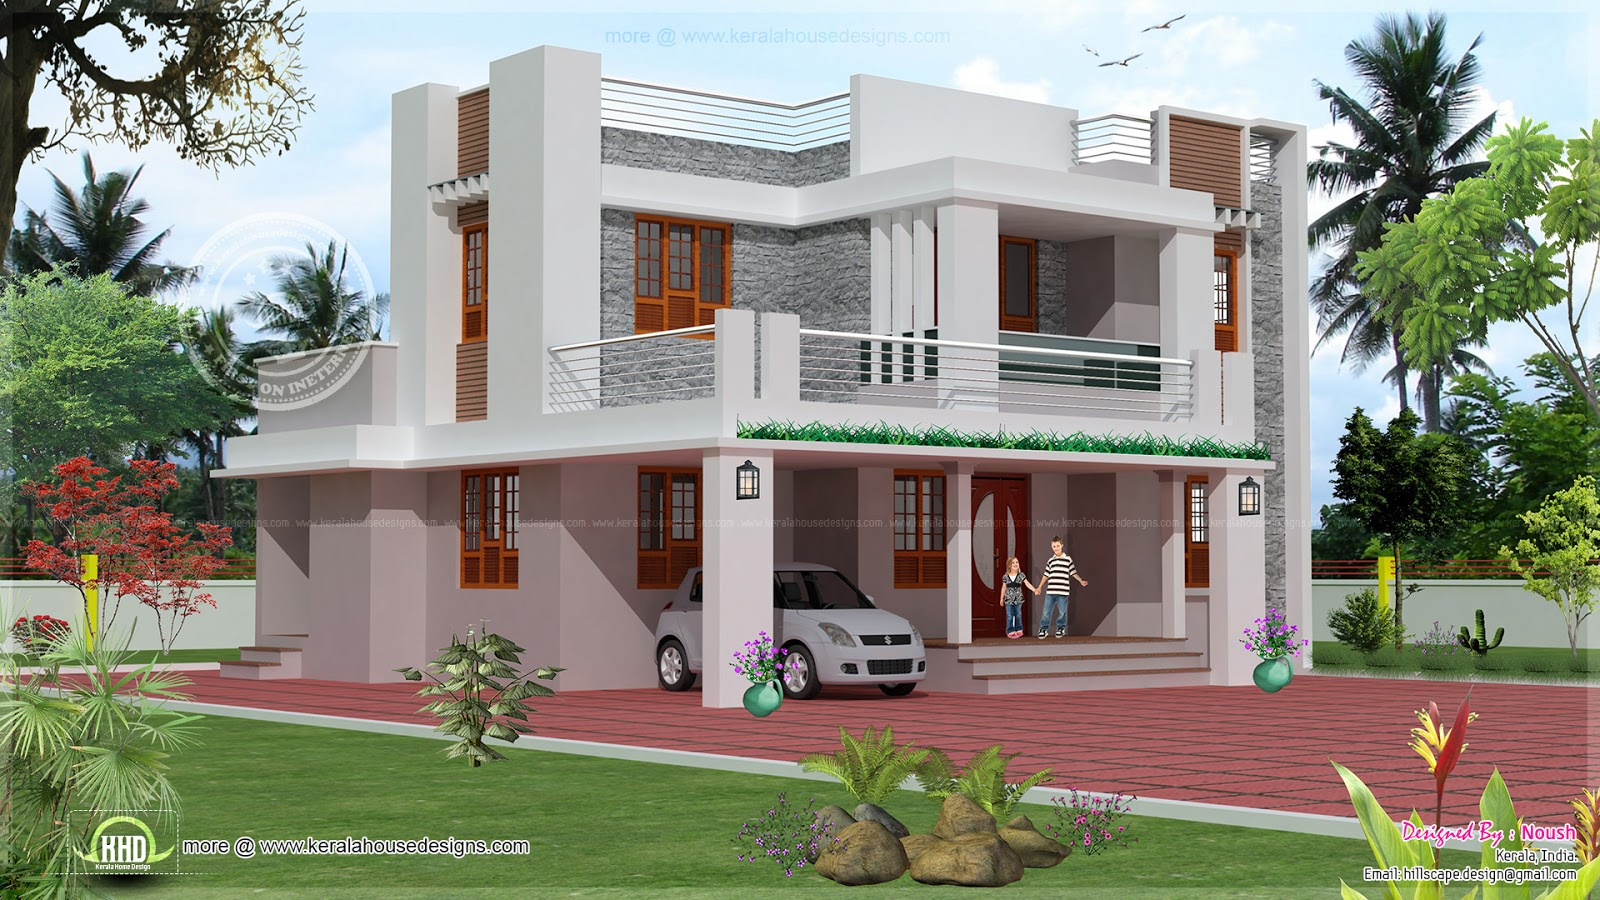 4 bedroom 2 story house exterior design kerala home for 2 story house layout